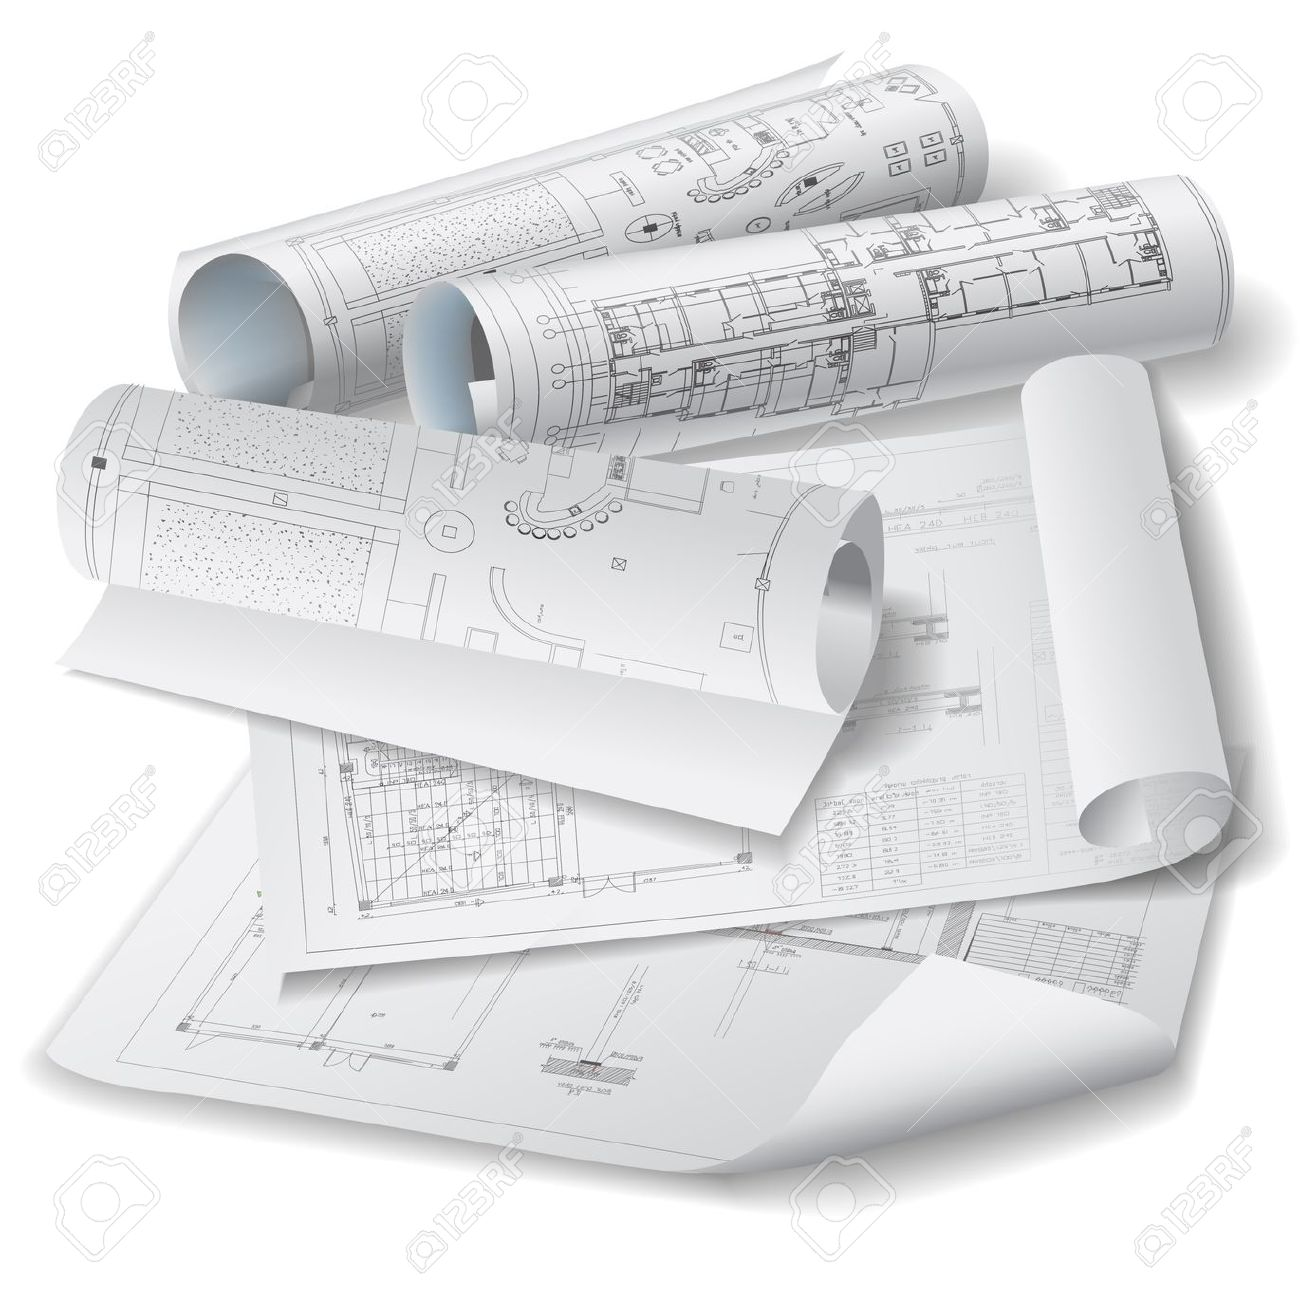 Technical drawing clipart clipground for Printing architectural drawings